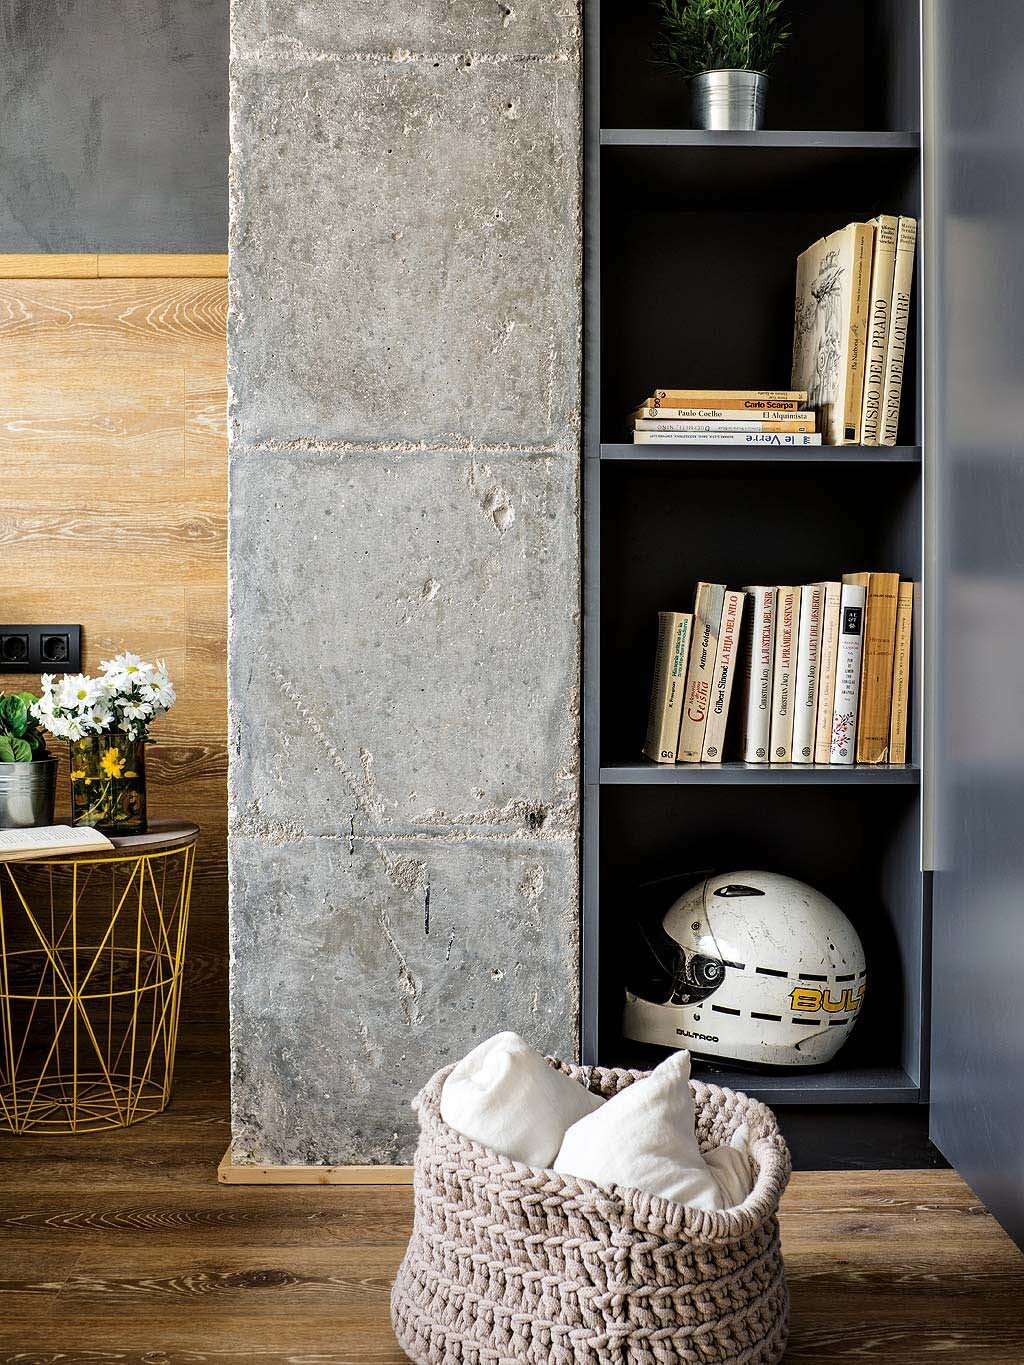 Inspiring Spanish Apartment Features Raw Industrial Details